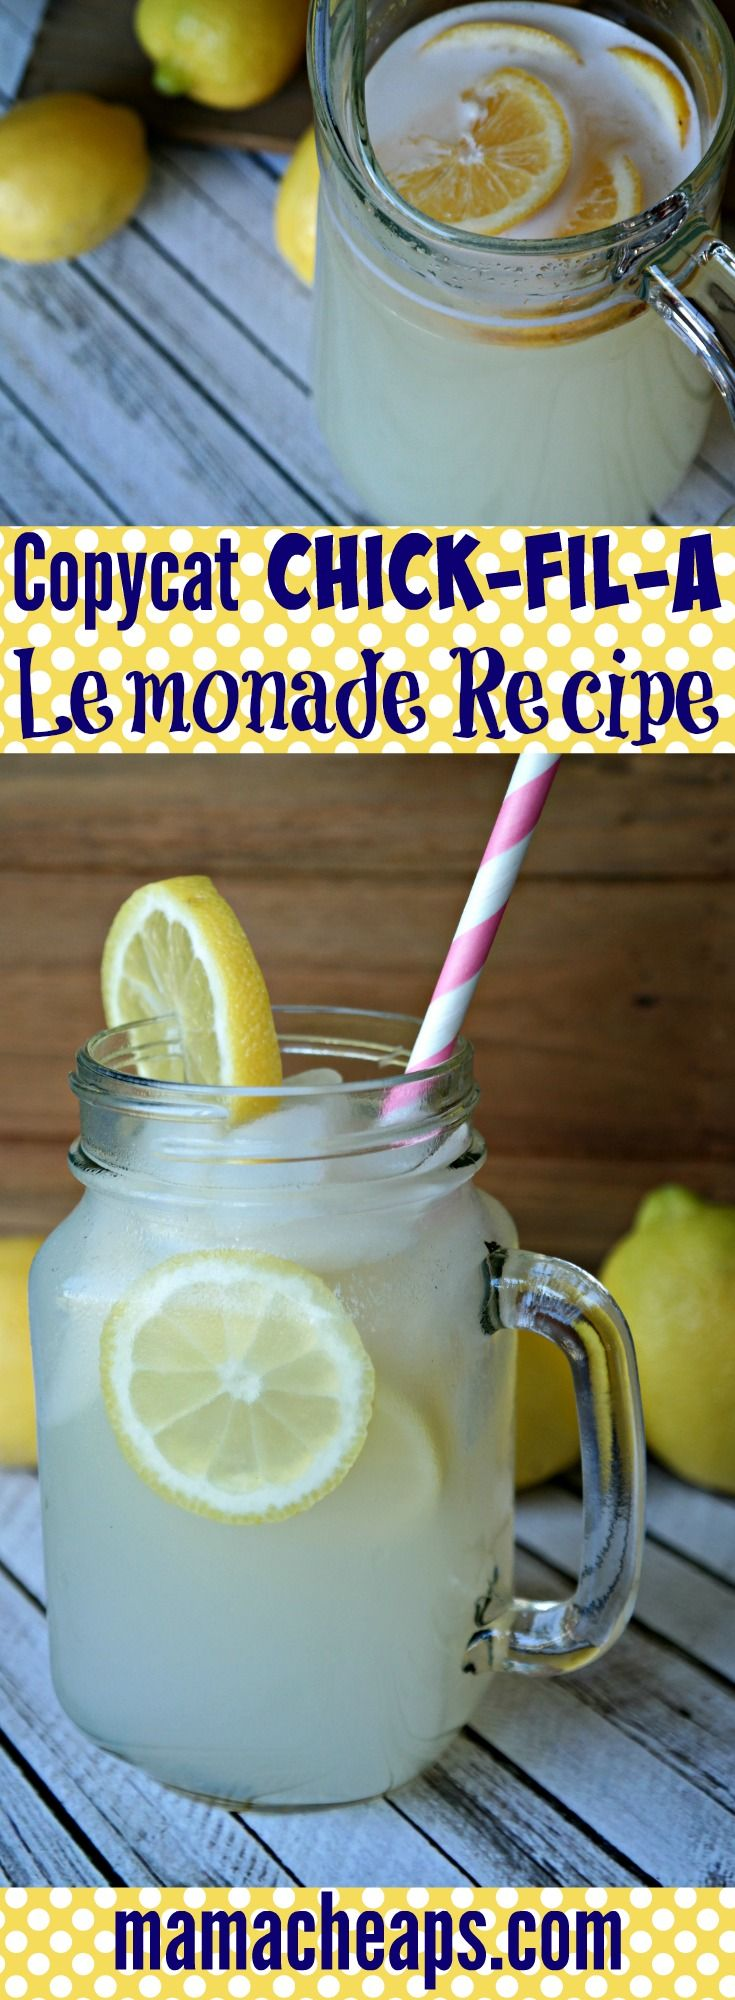 Chick-Fil-A Copycat Lemonade Recipe